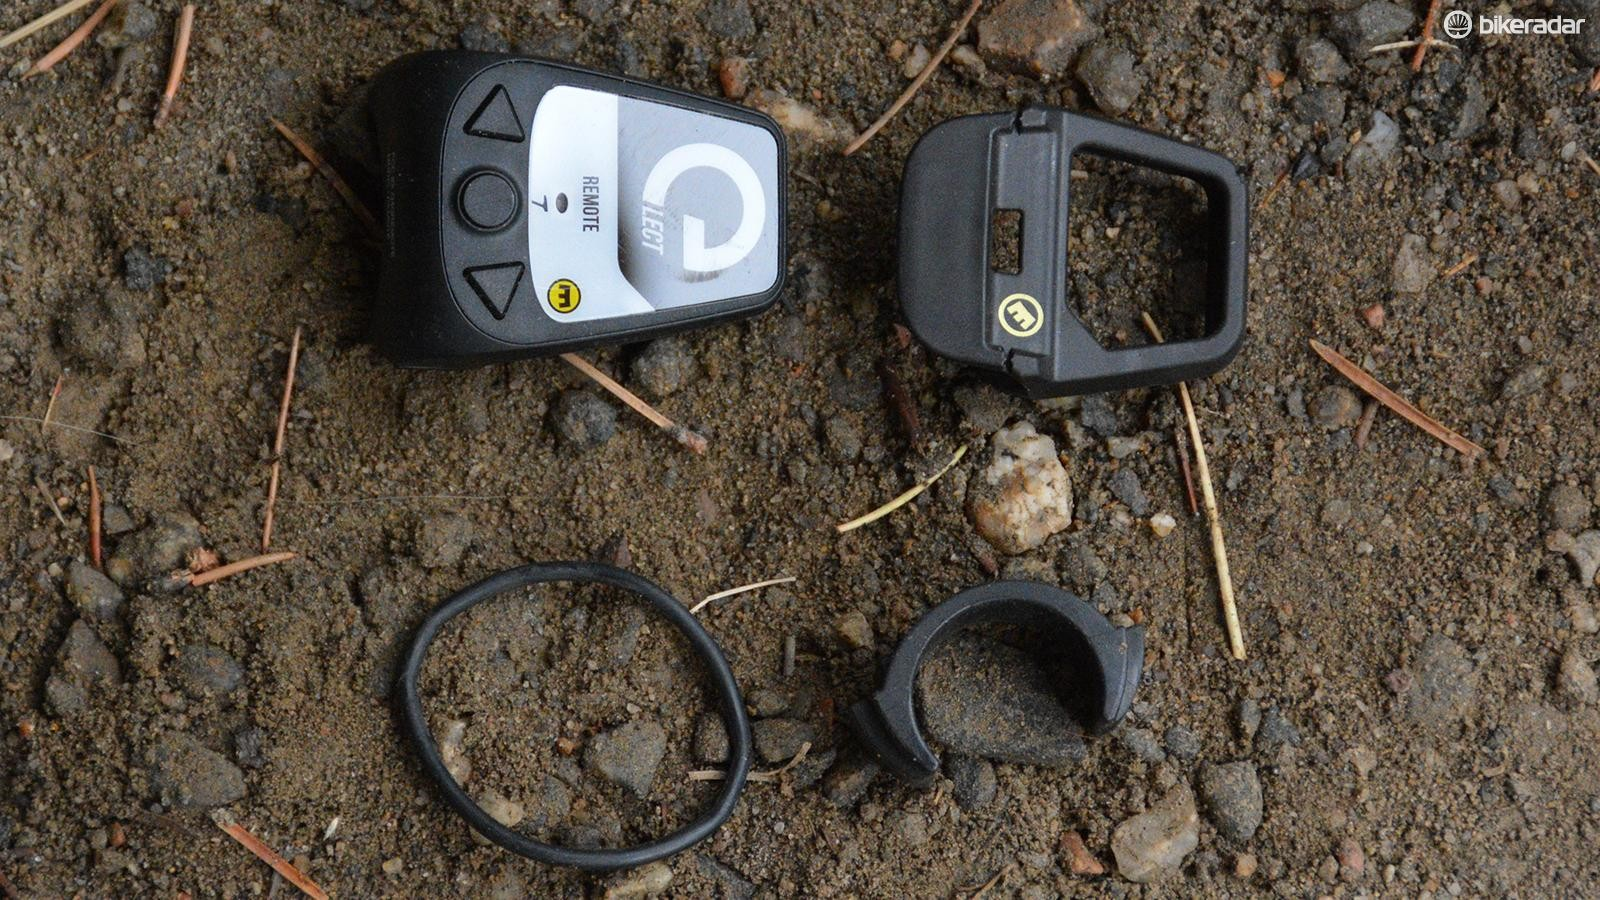 Shown here, clockwise from top left: remote, button cover, bar spacer, O-ring